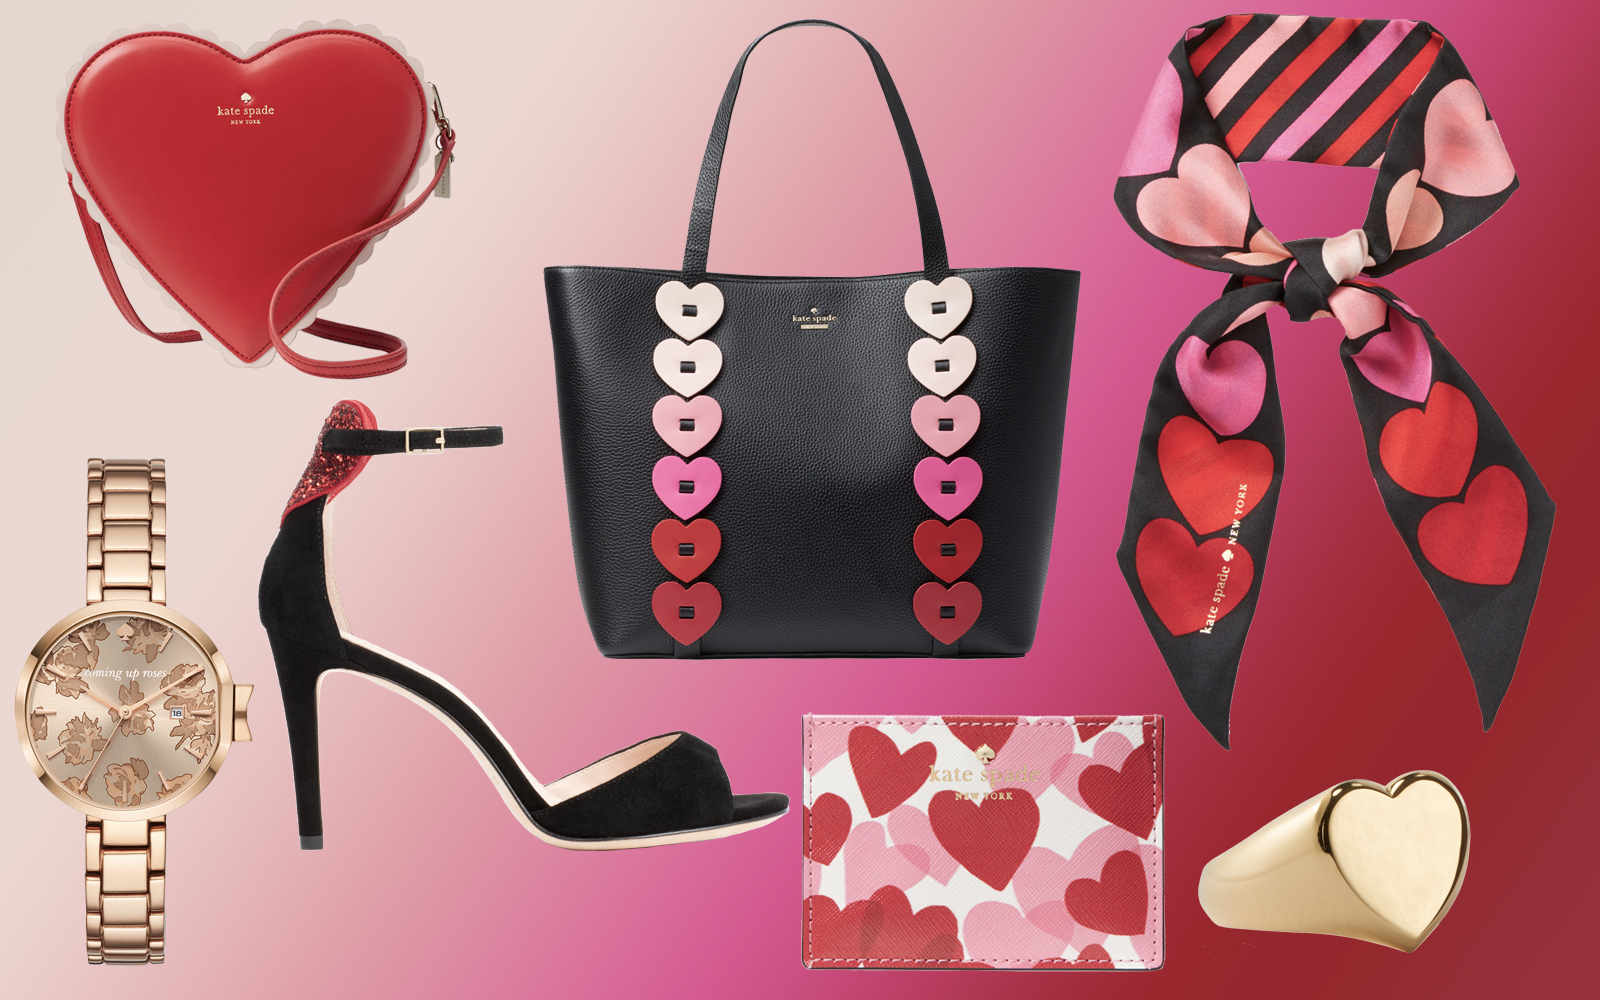 Super-Cute Kate Spade Gifts Just in Time for Valentine's Day